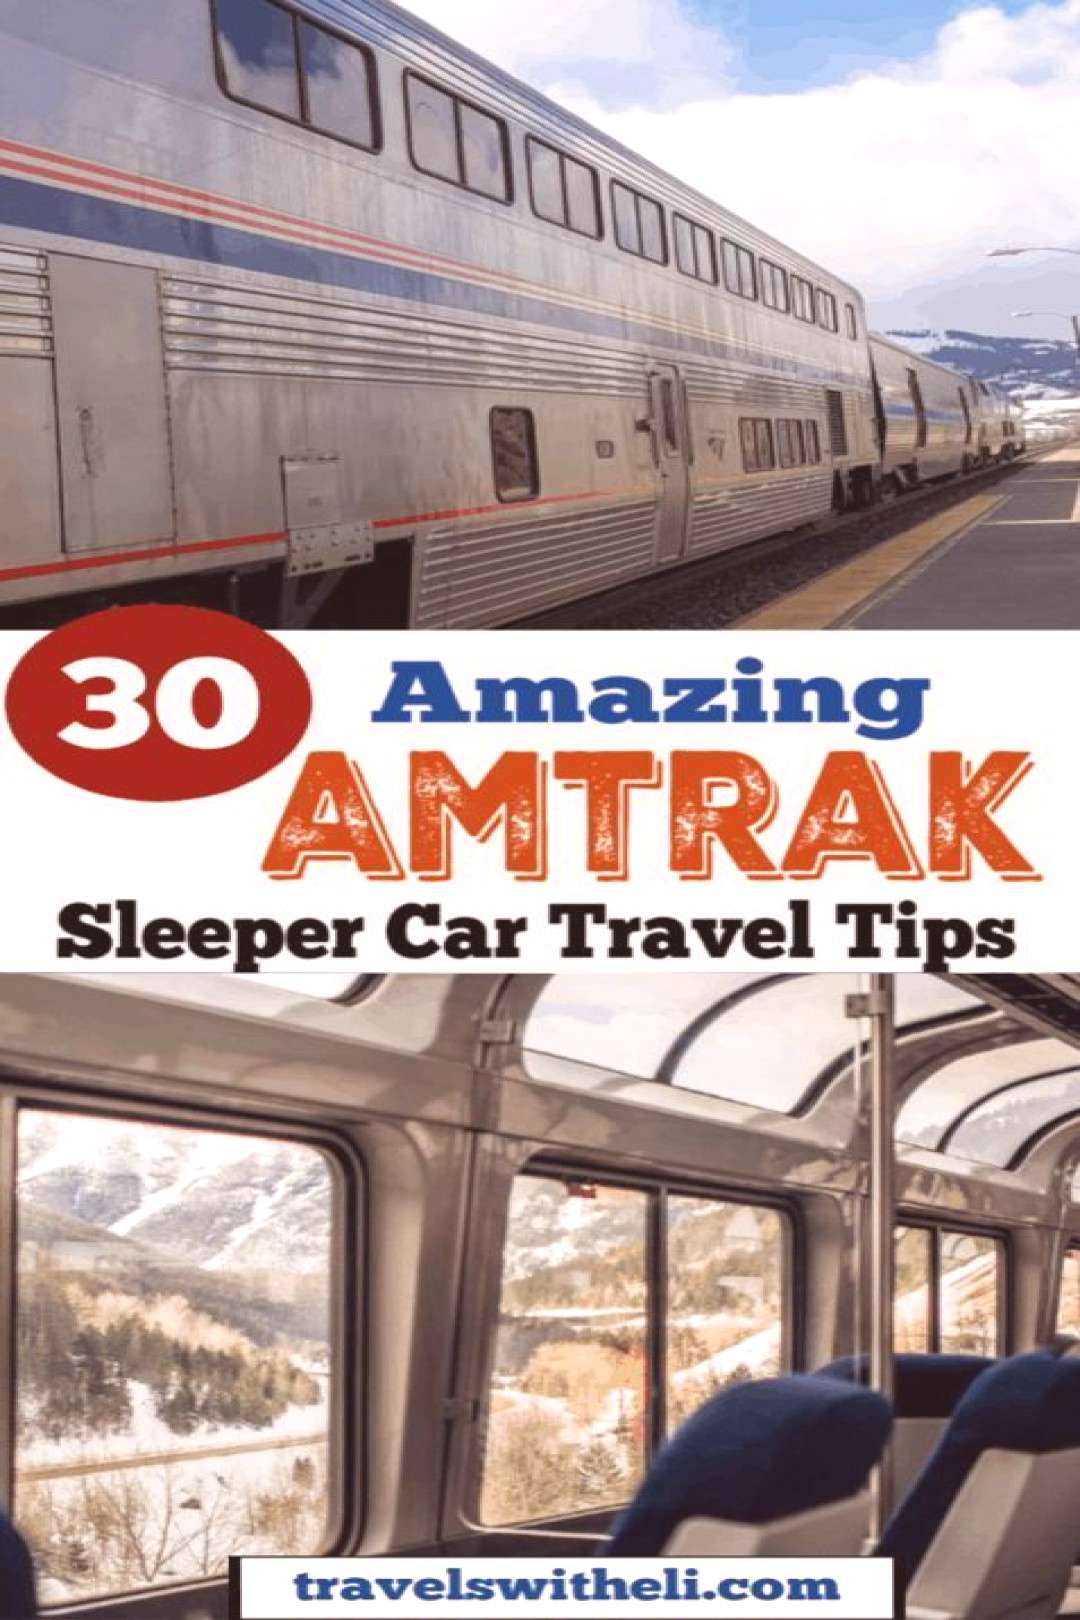 The Ultimate Guide to Riding The Amtrak Train From Colorado to California - Travels With Eli  - tr